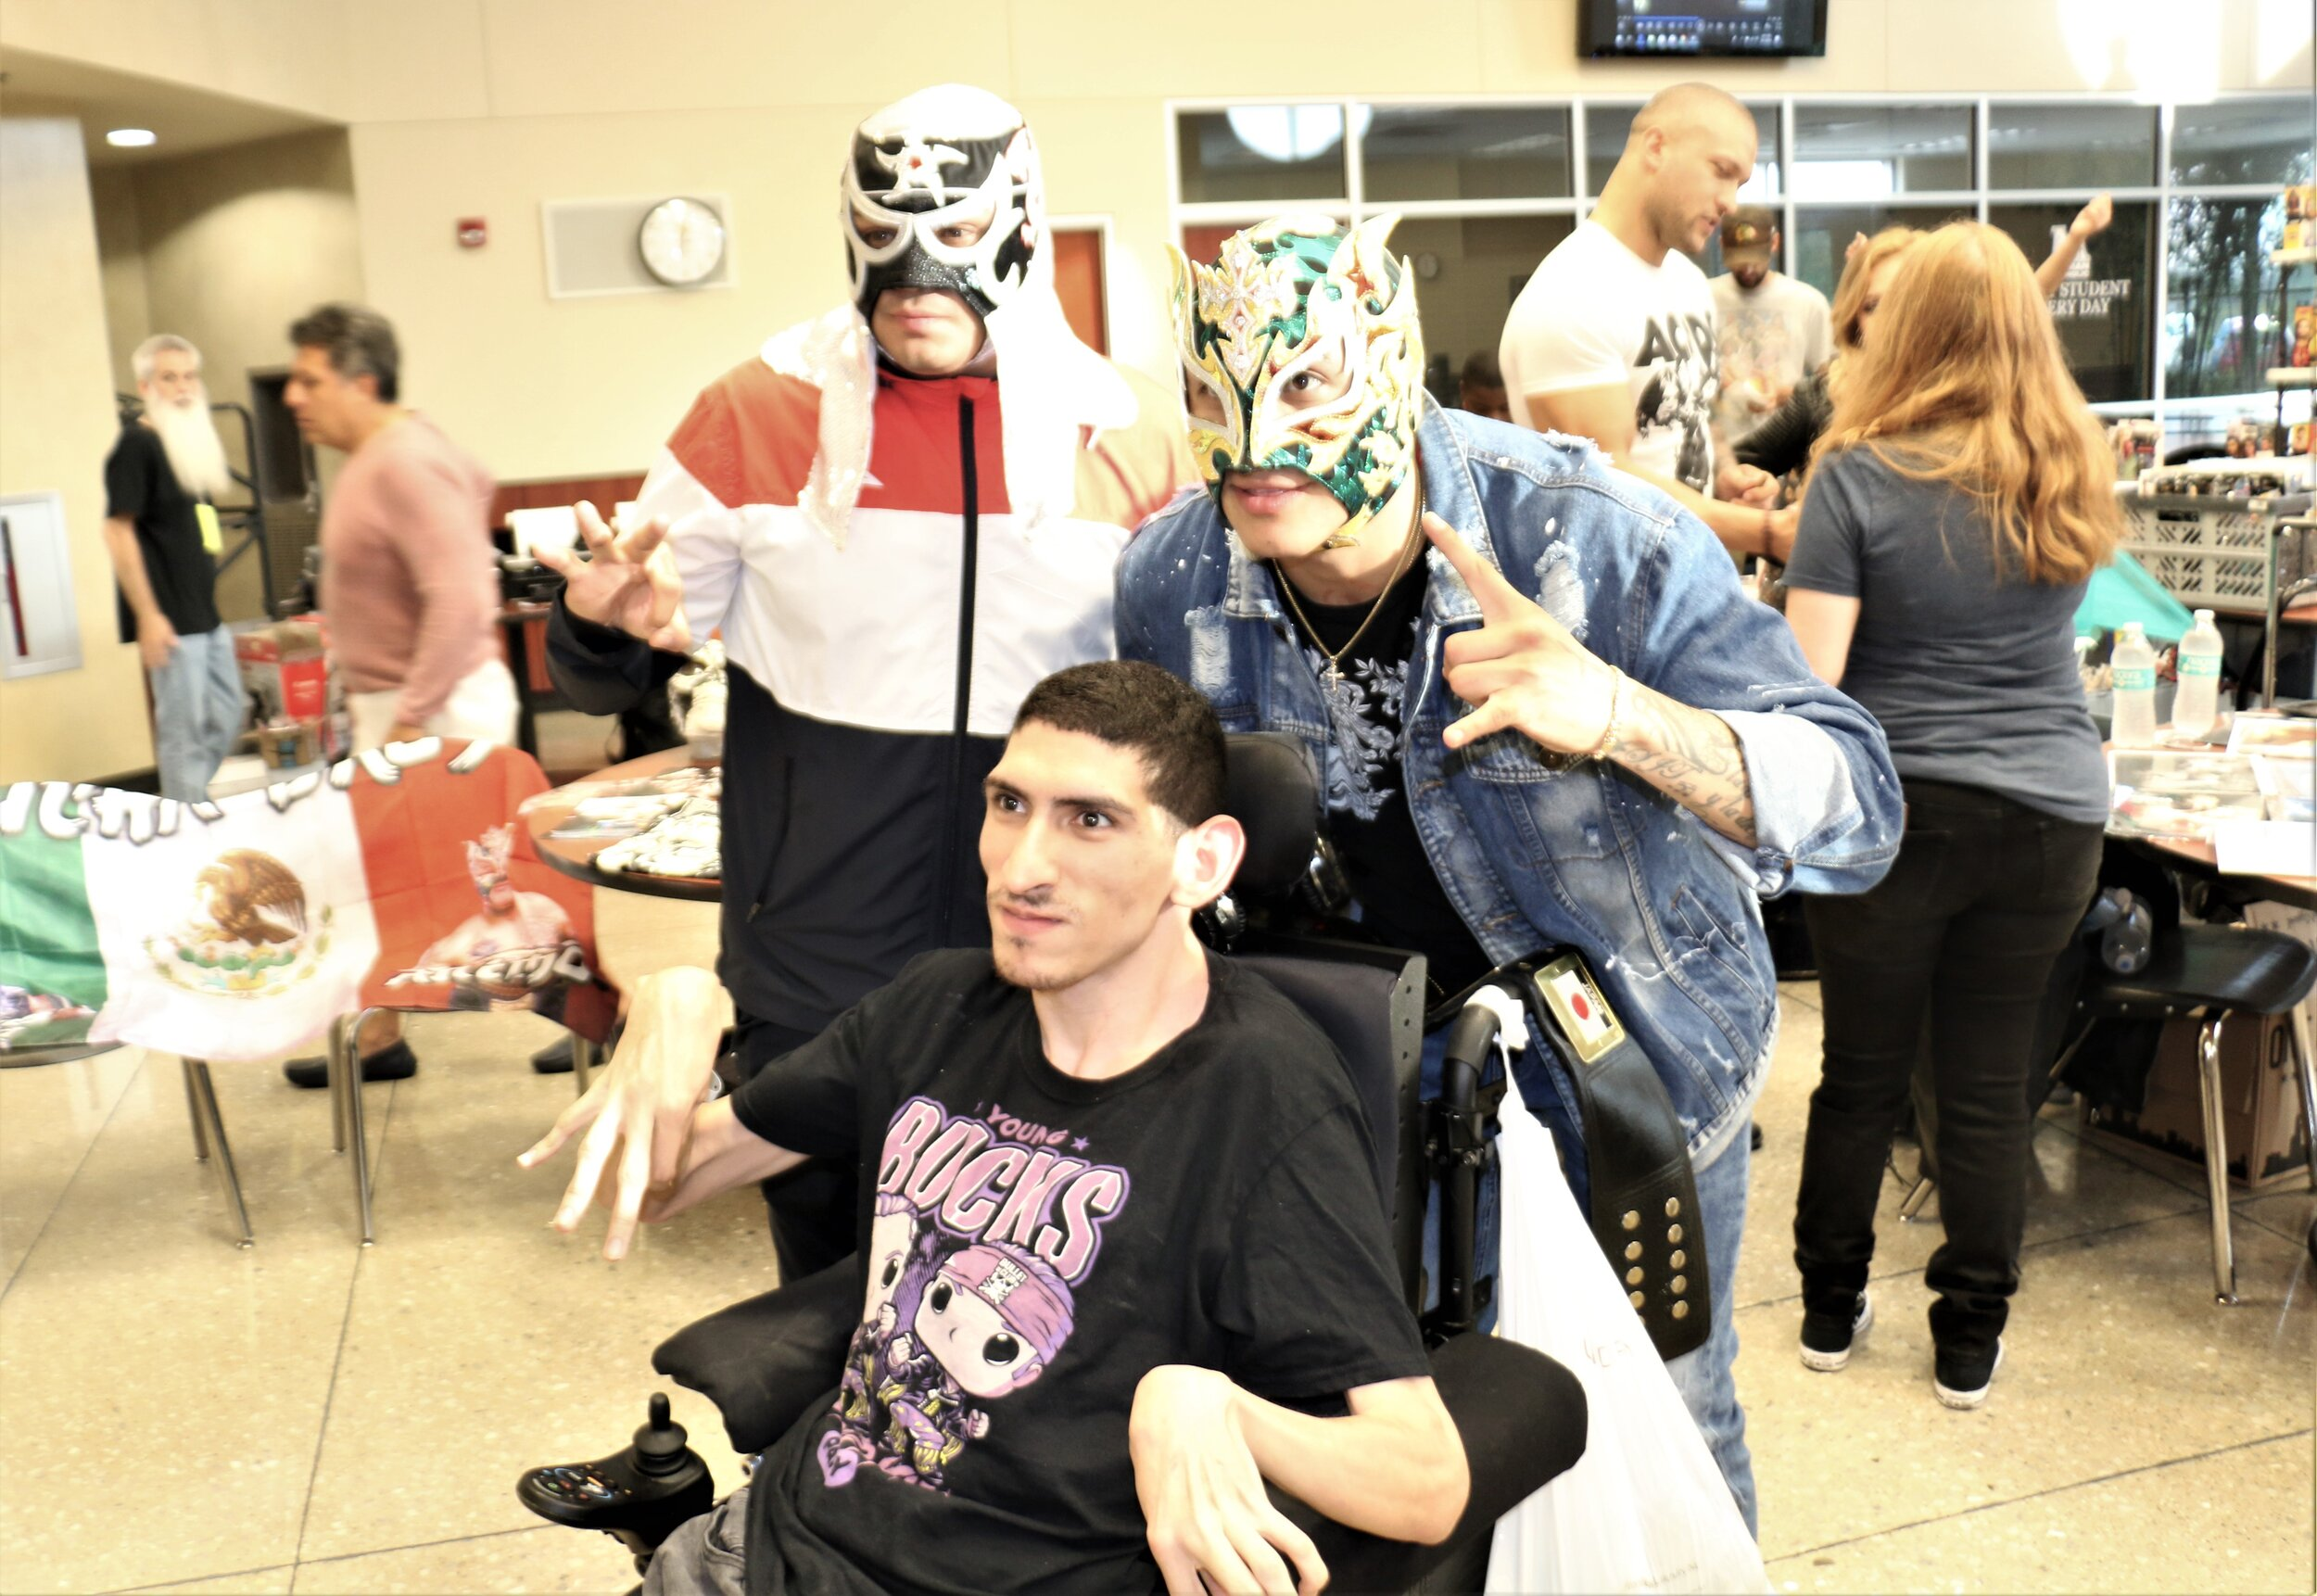 Wrestling fan Niko poses with Penta El 0M, left, and Fenix at the Warrior Wrestling 6 VIP Fan Fest.